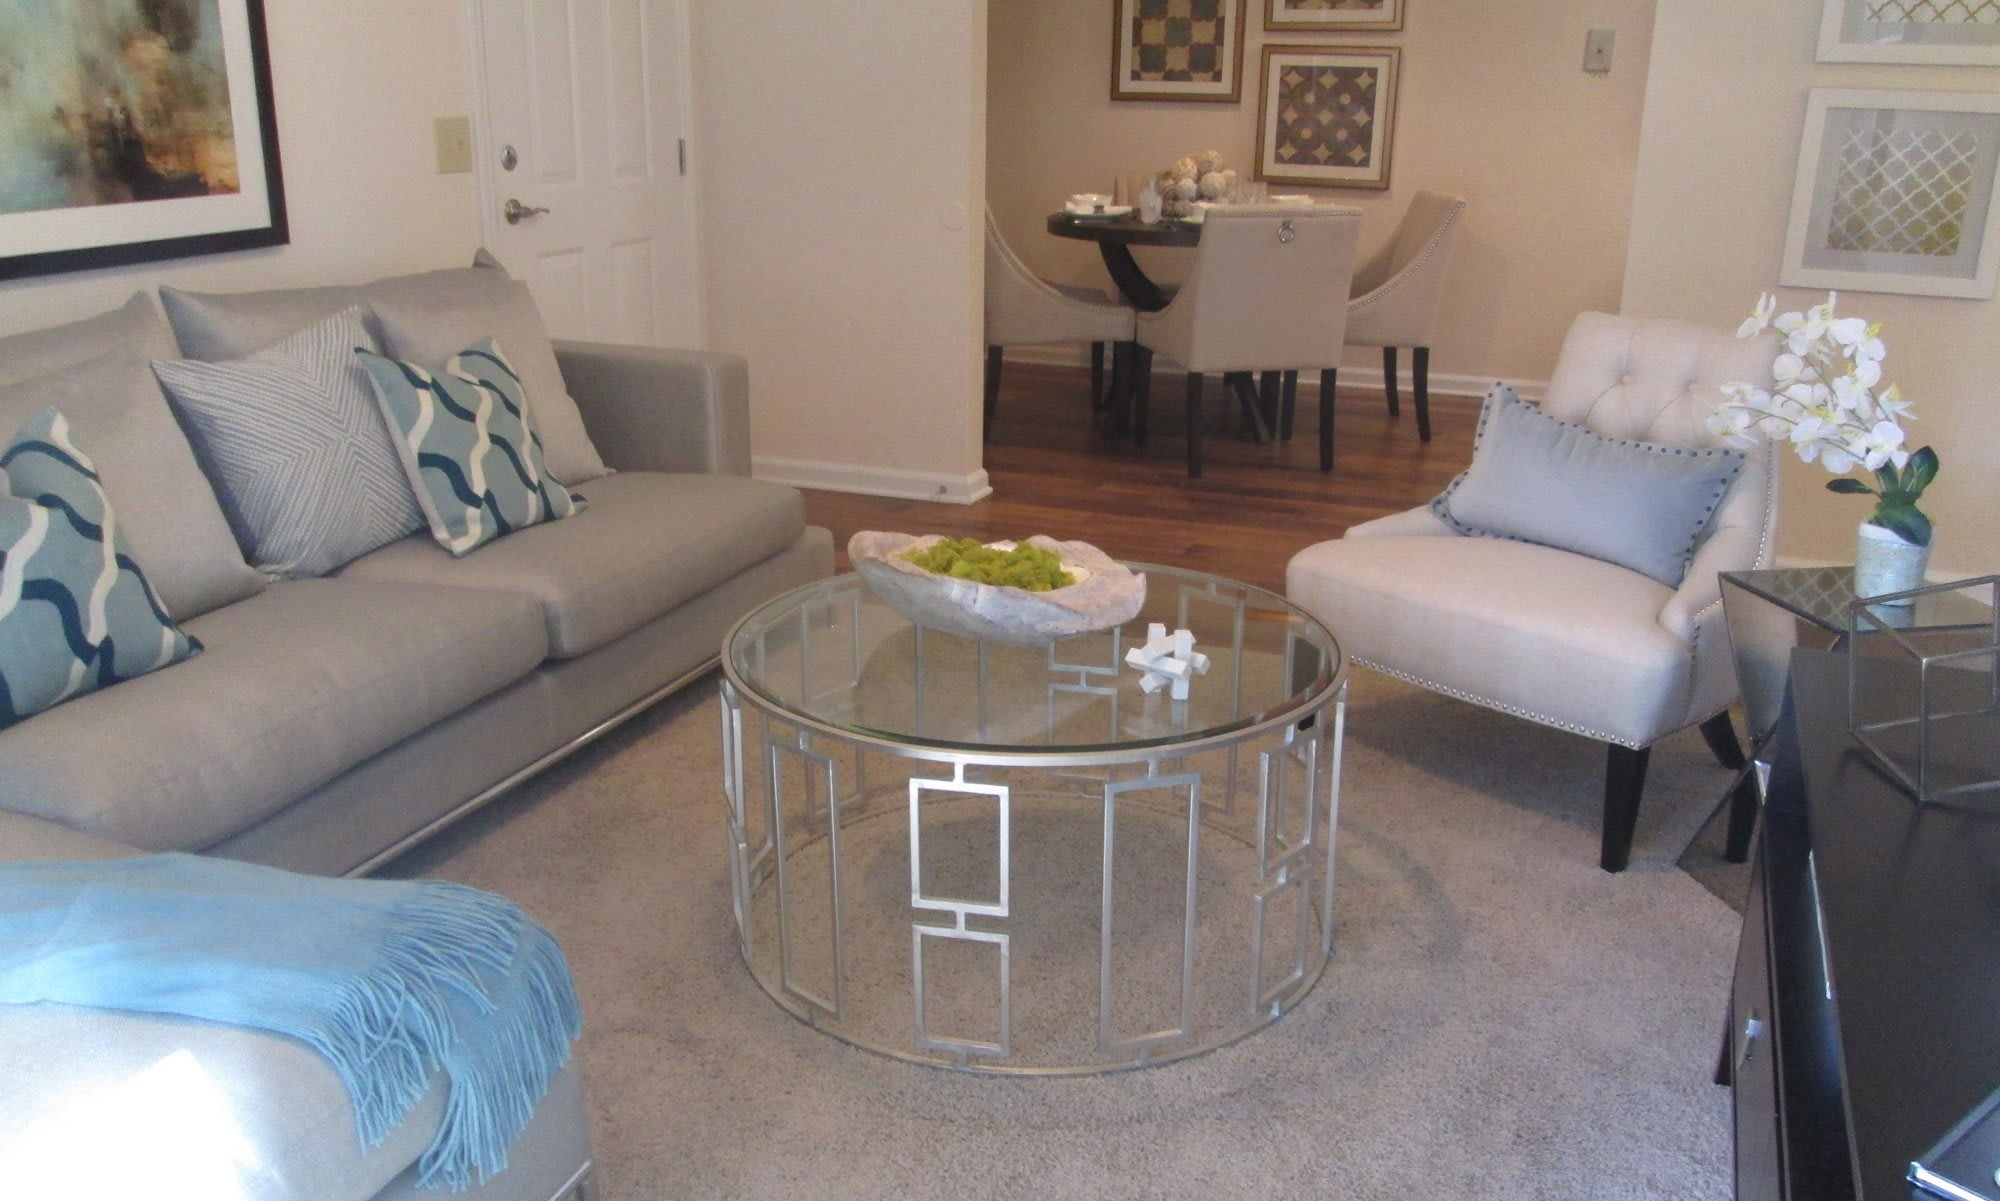 The Grove at Spring Valley apartments has very spacious living rooms